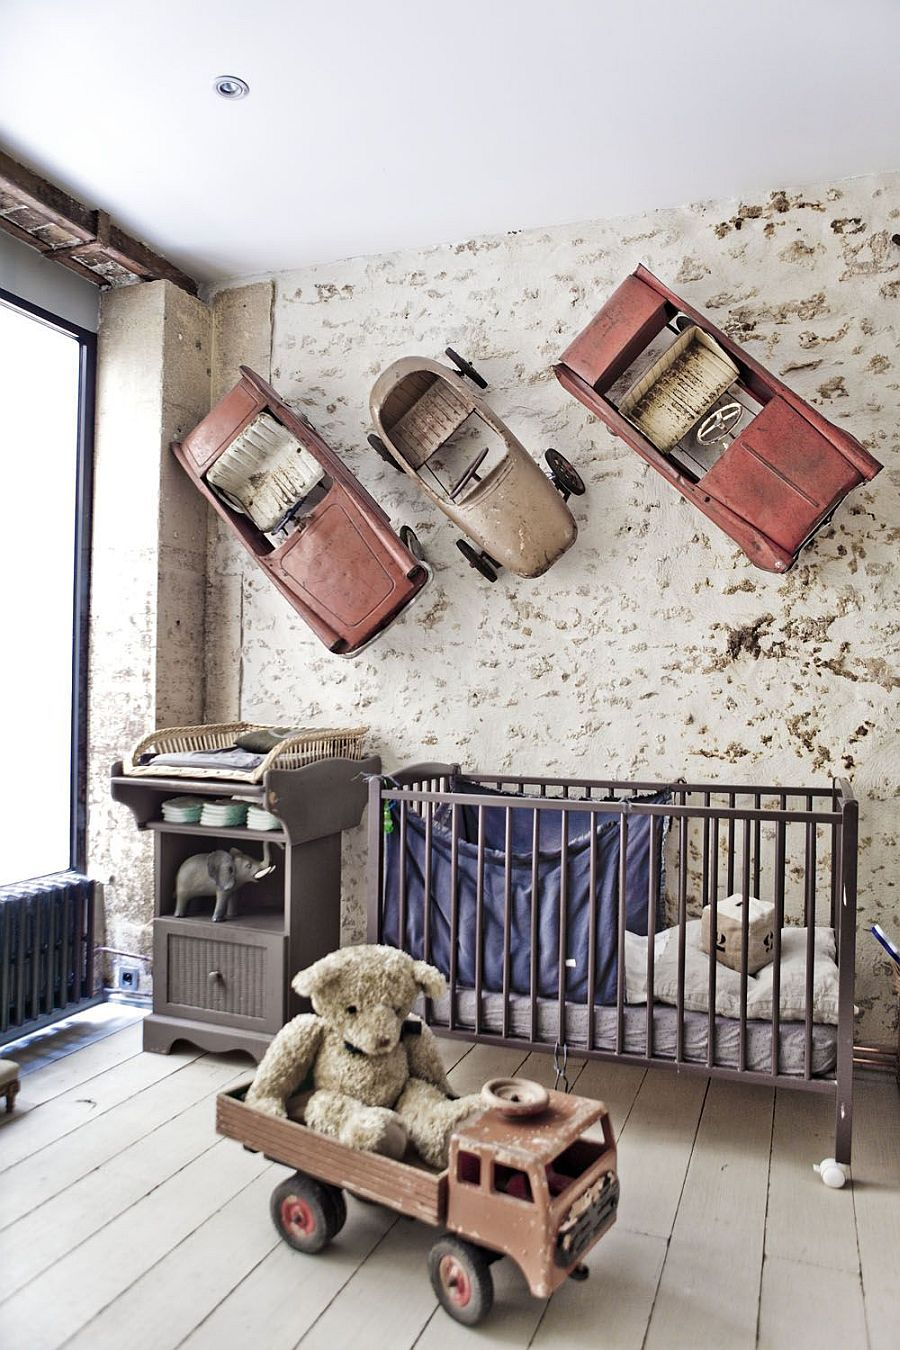 Decorative items on the wall turn this nursery into a showstopper